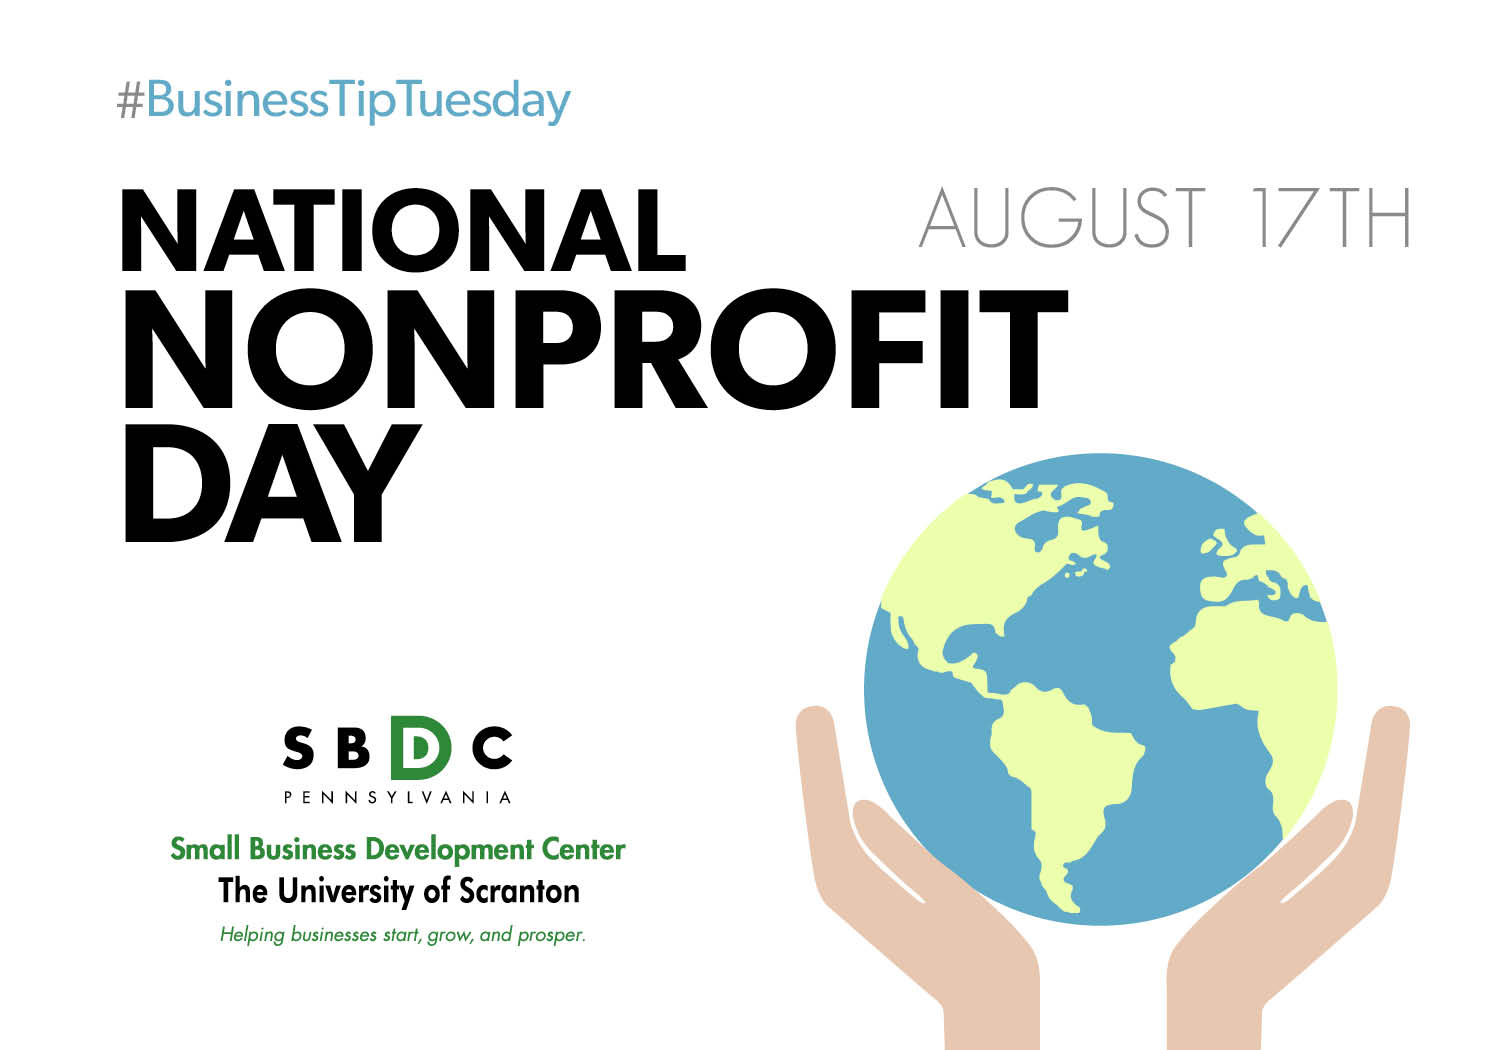 #BusinessTipTuesday – National Nonprofit Day